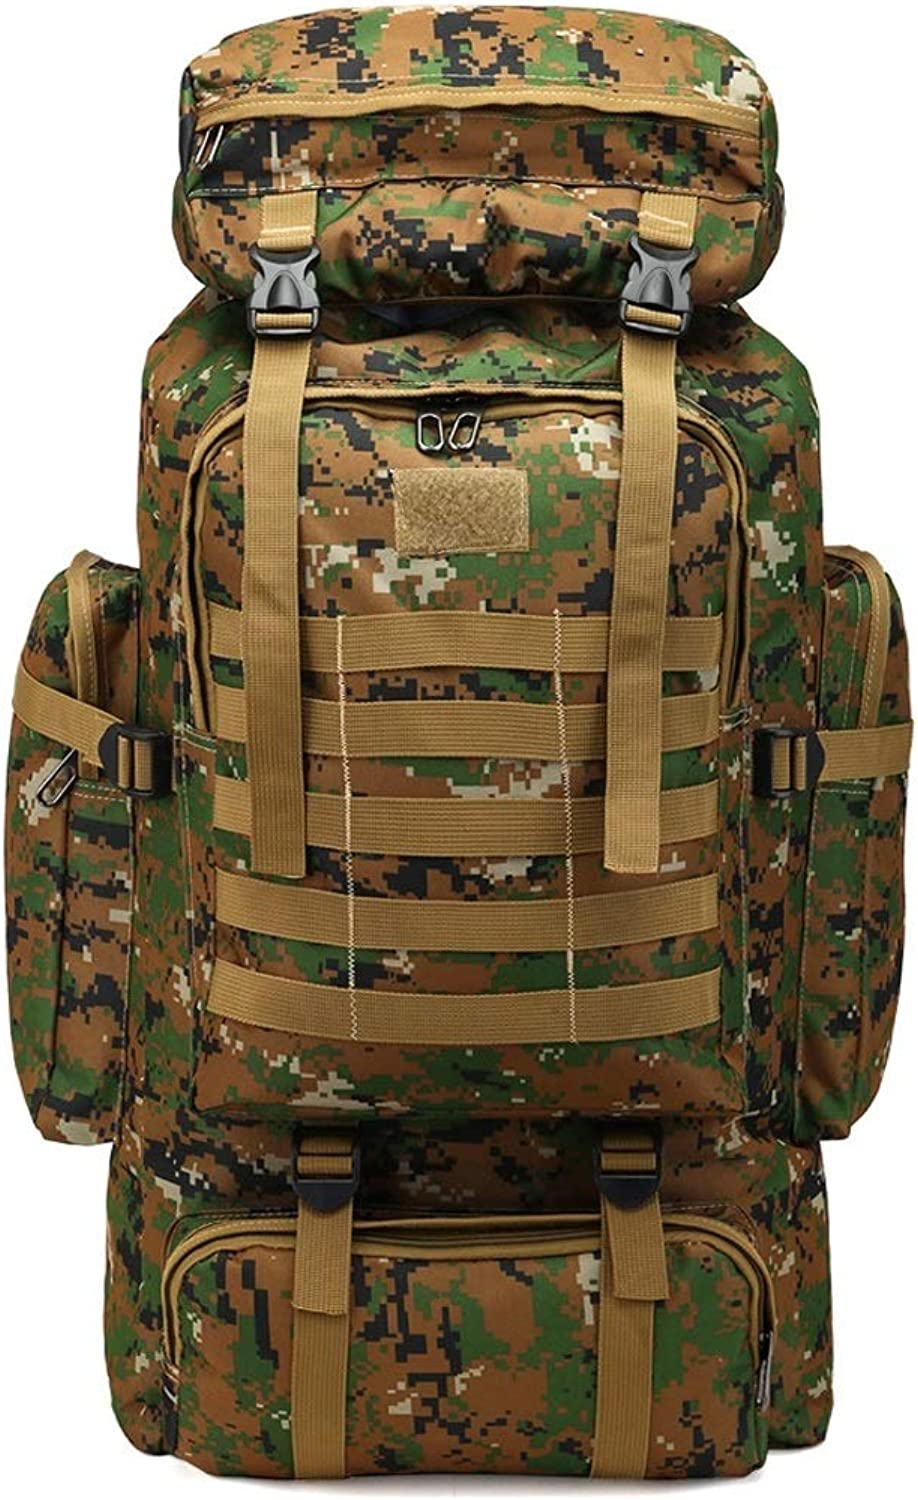 WENNEW Magnanimous Capacity 80L Oxford Cloth Backpack Camouflage Outside Backpack Travel Mountaineering Bag (color   A4)